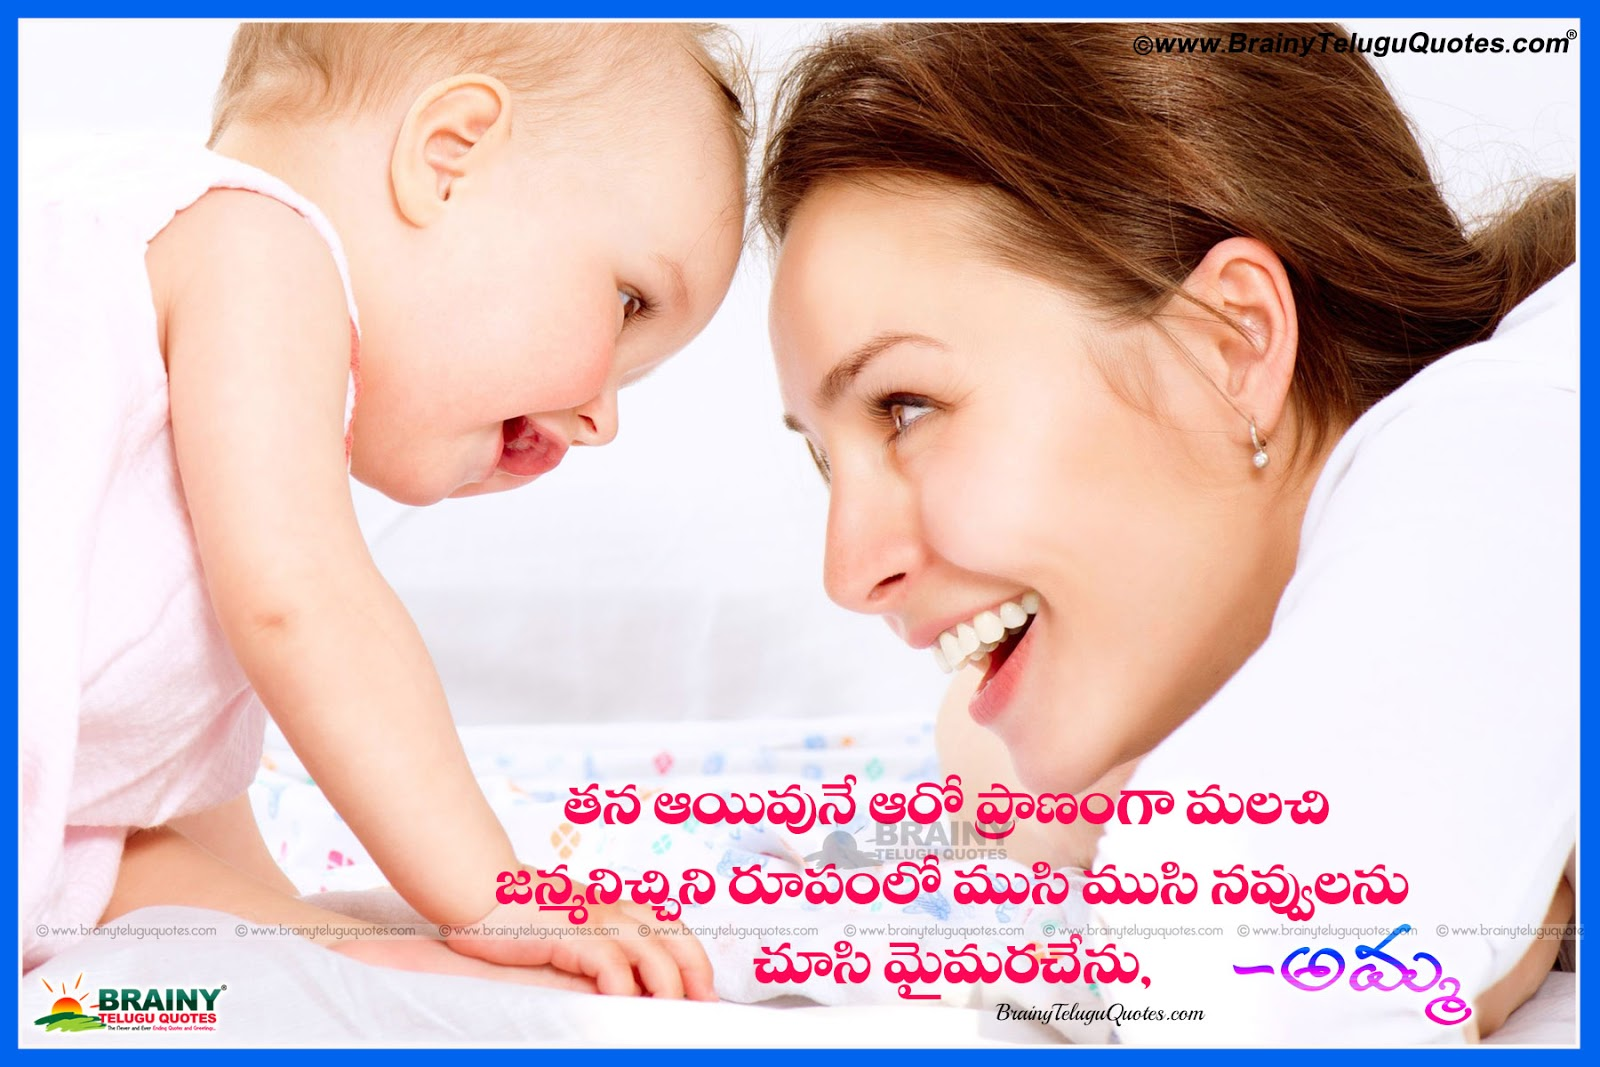 Source · Mother quotations Amma Kavithalu in Telugu with child and mother